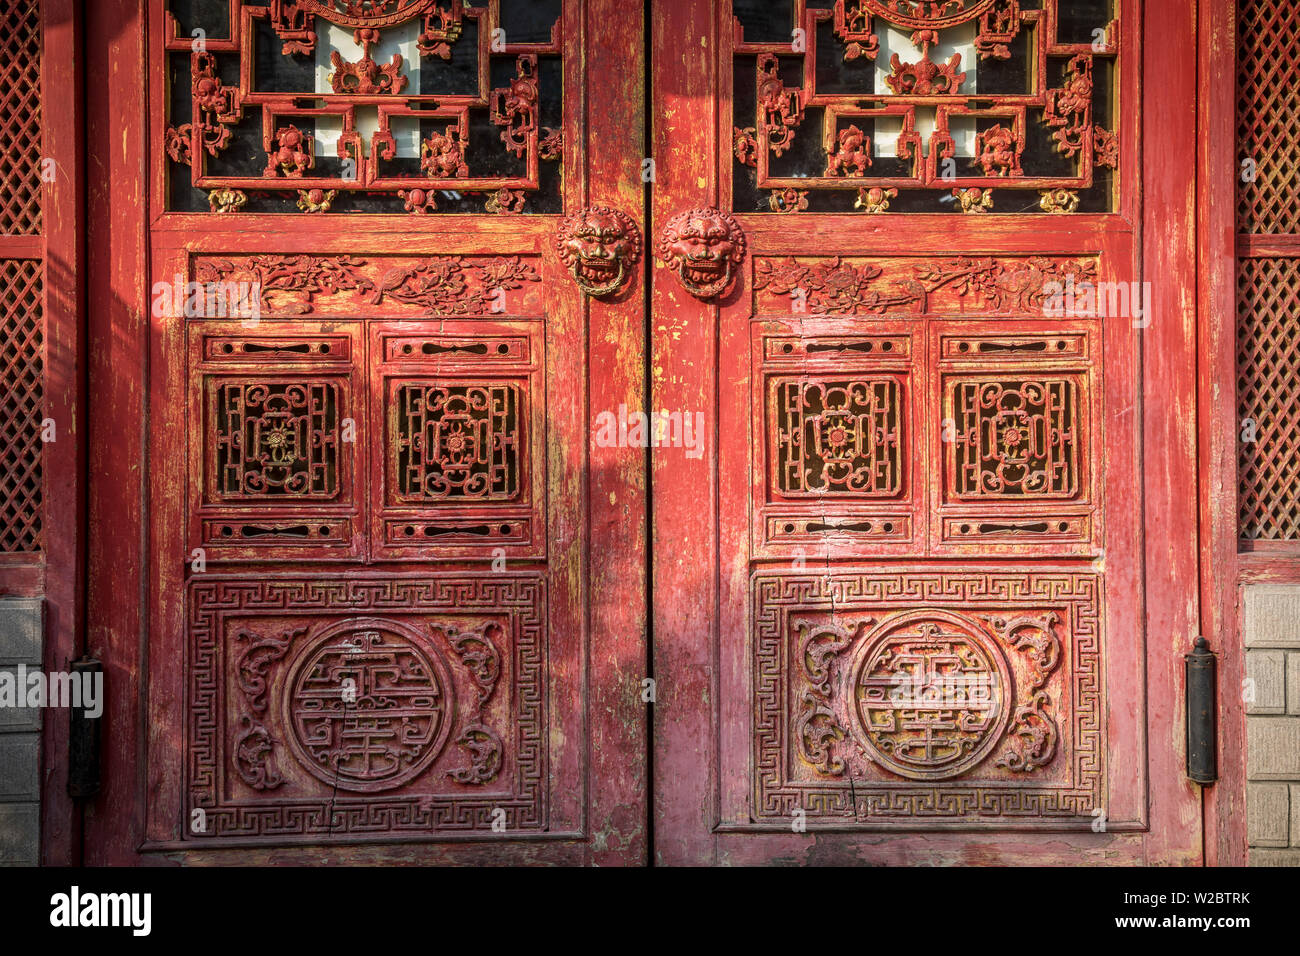 Traditional red doors in the Old City, Shanghai, China - Stock Image